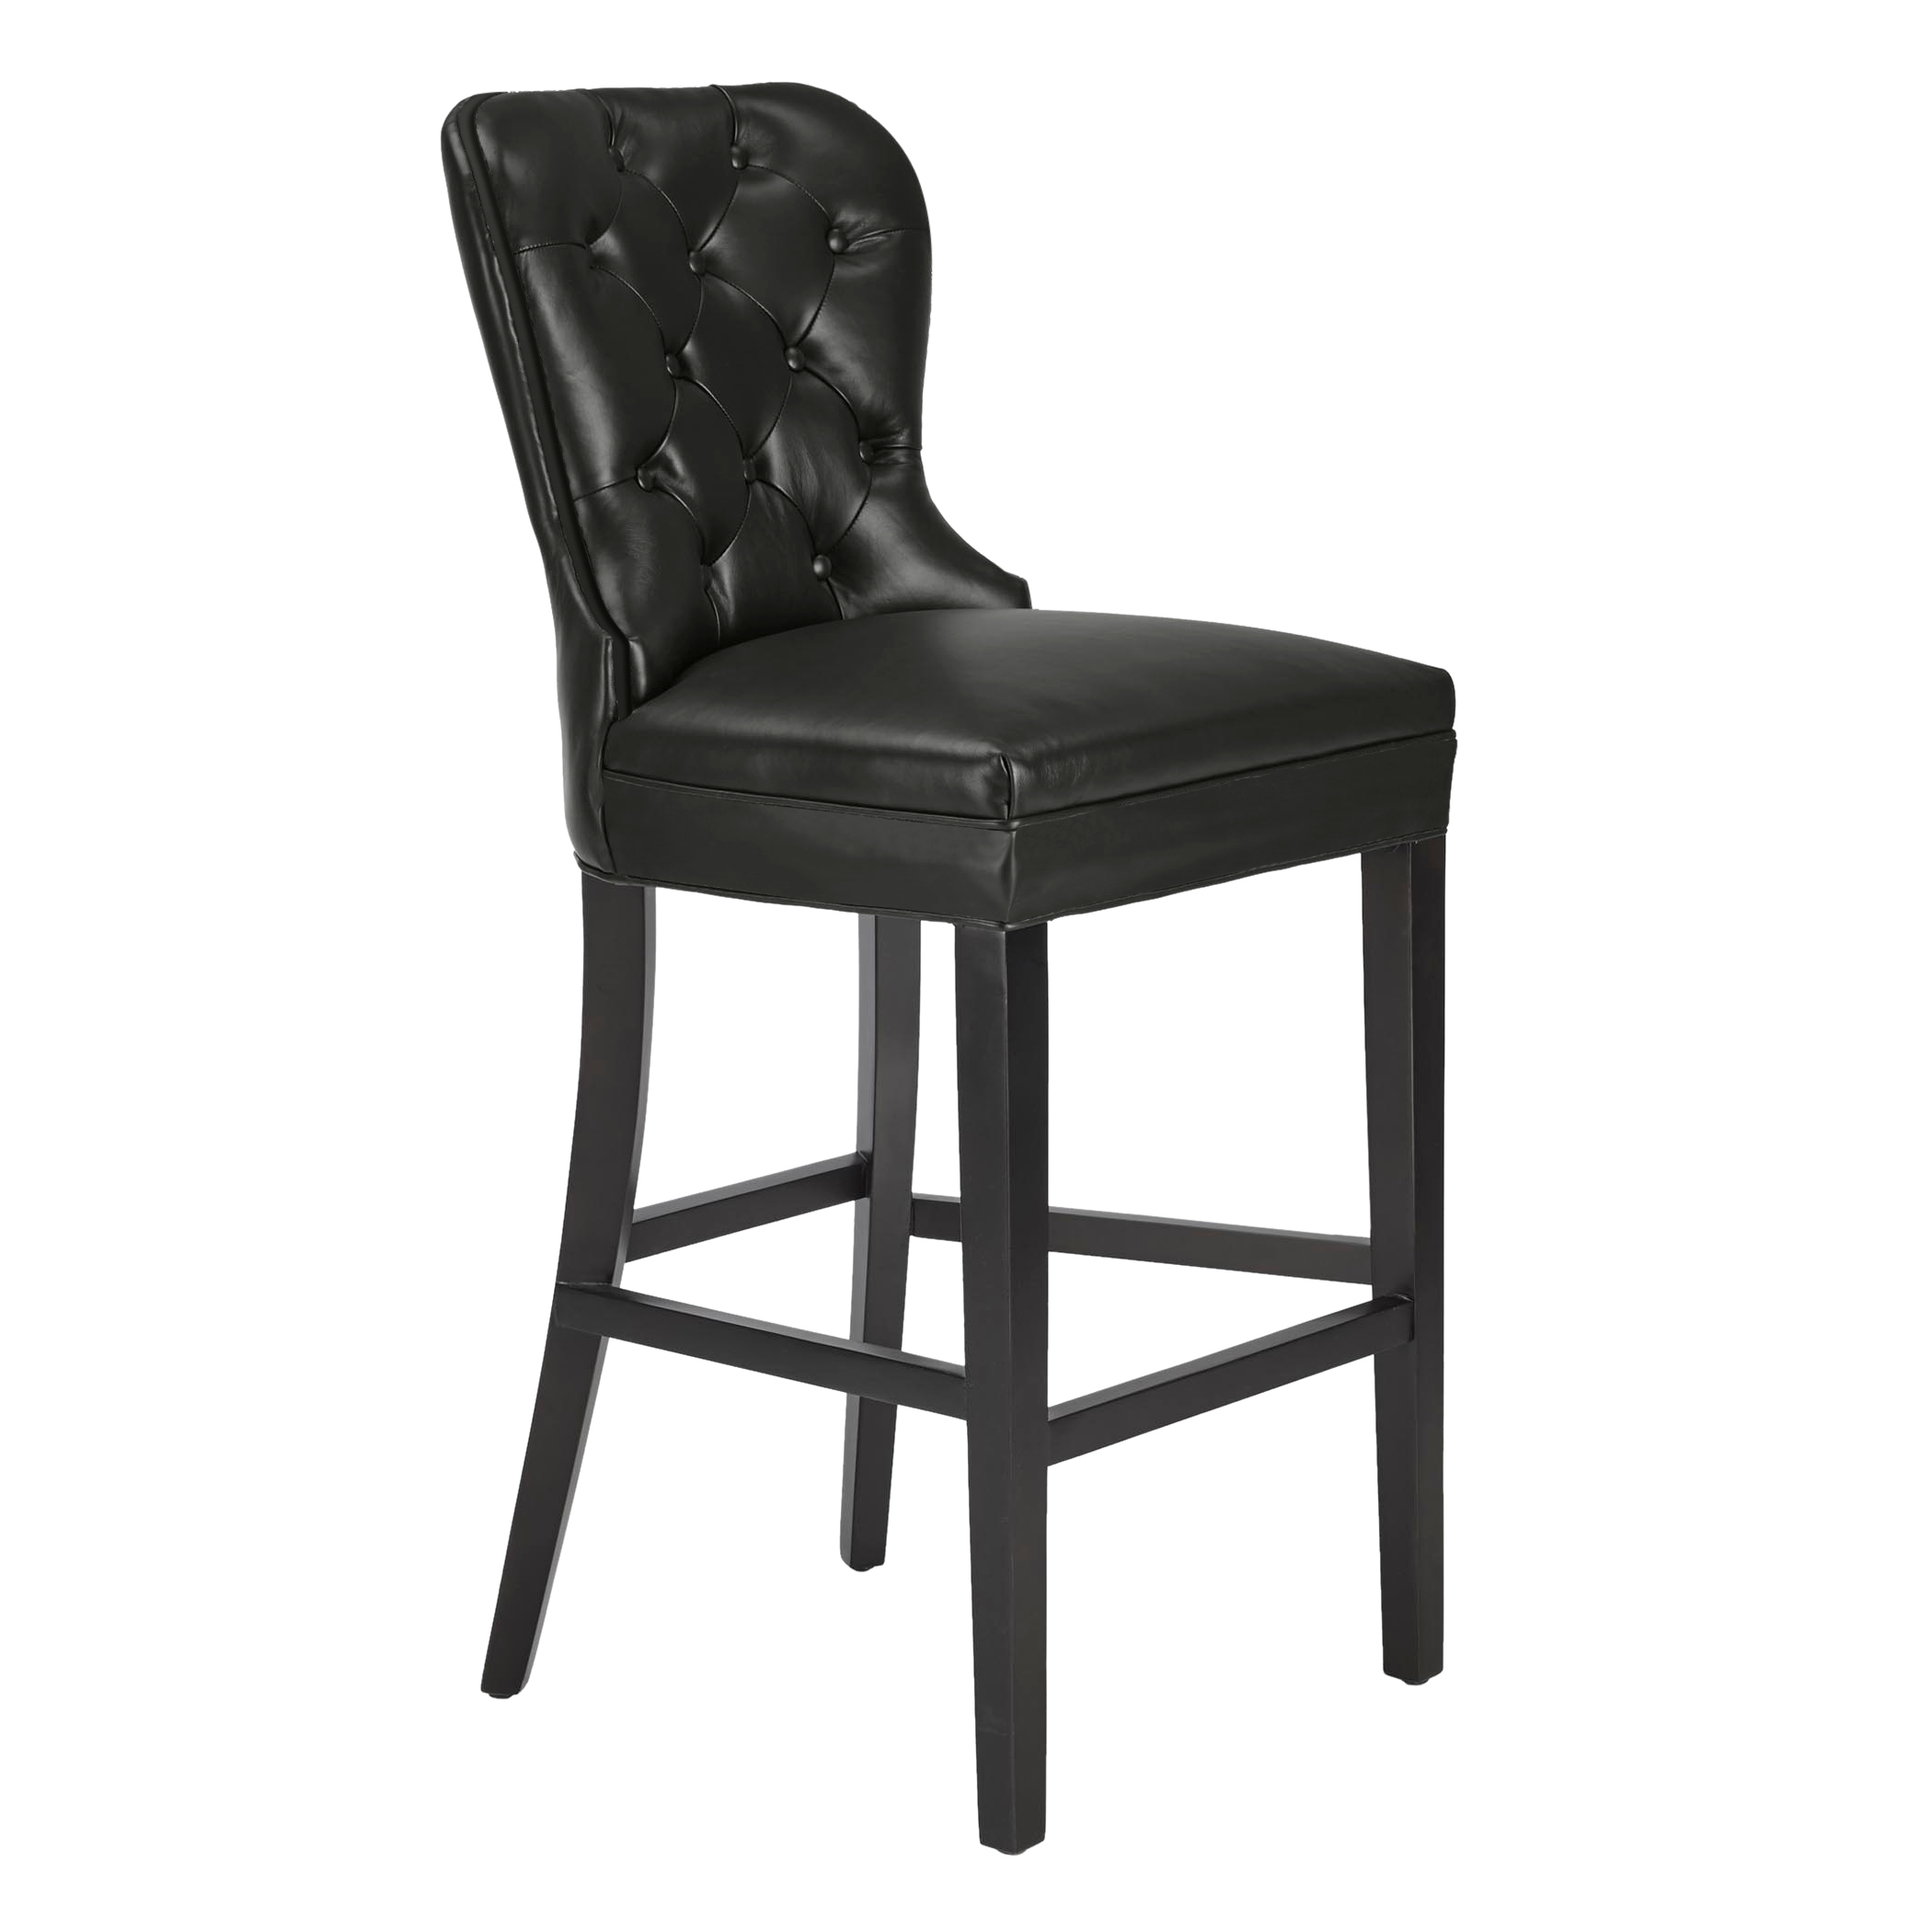 Charlotte Leather Stool - Espresso